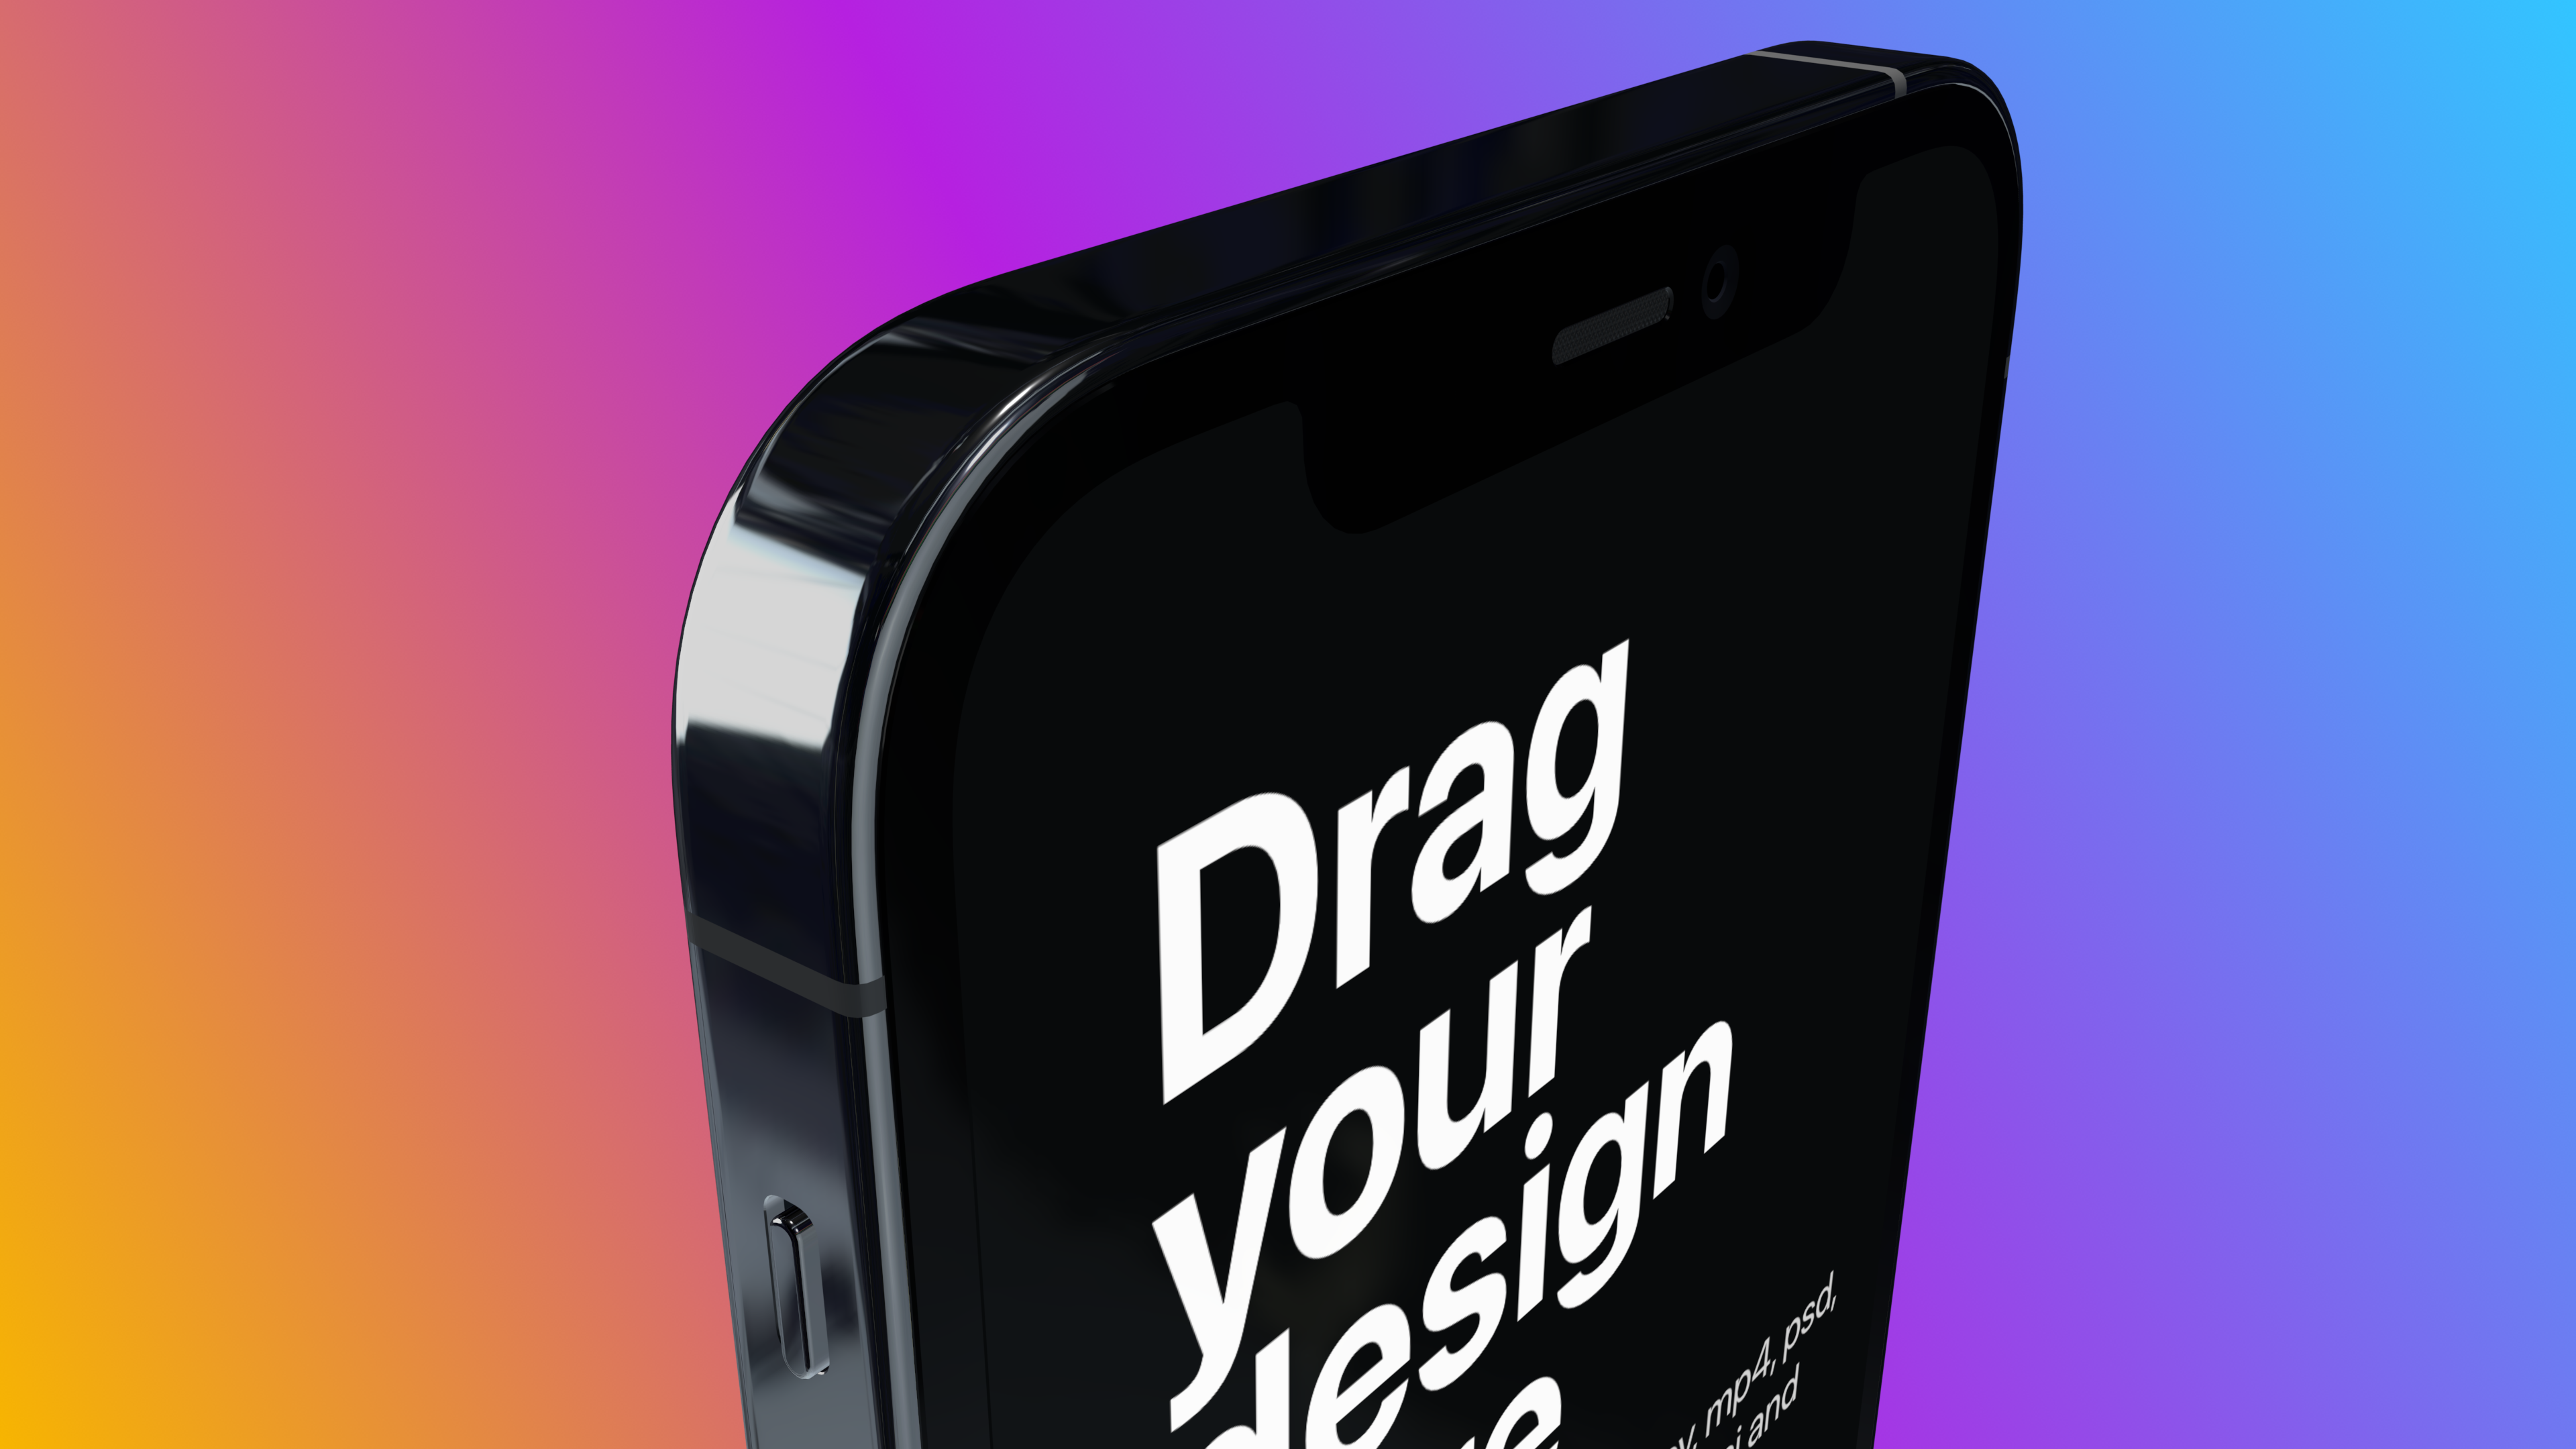 Call out a feature with this mockup